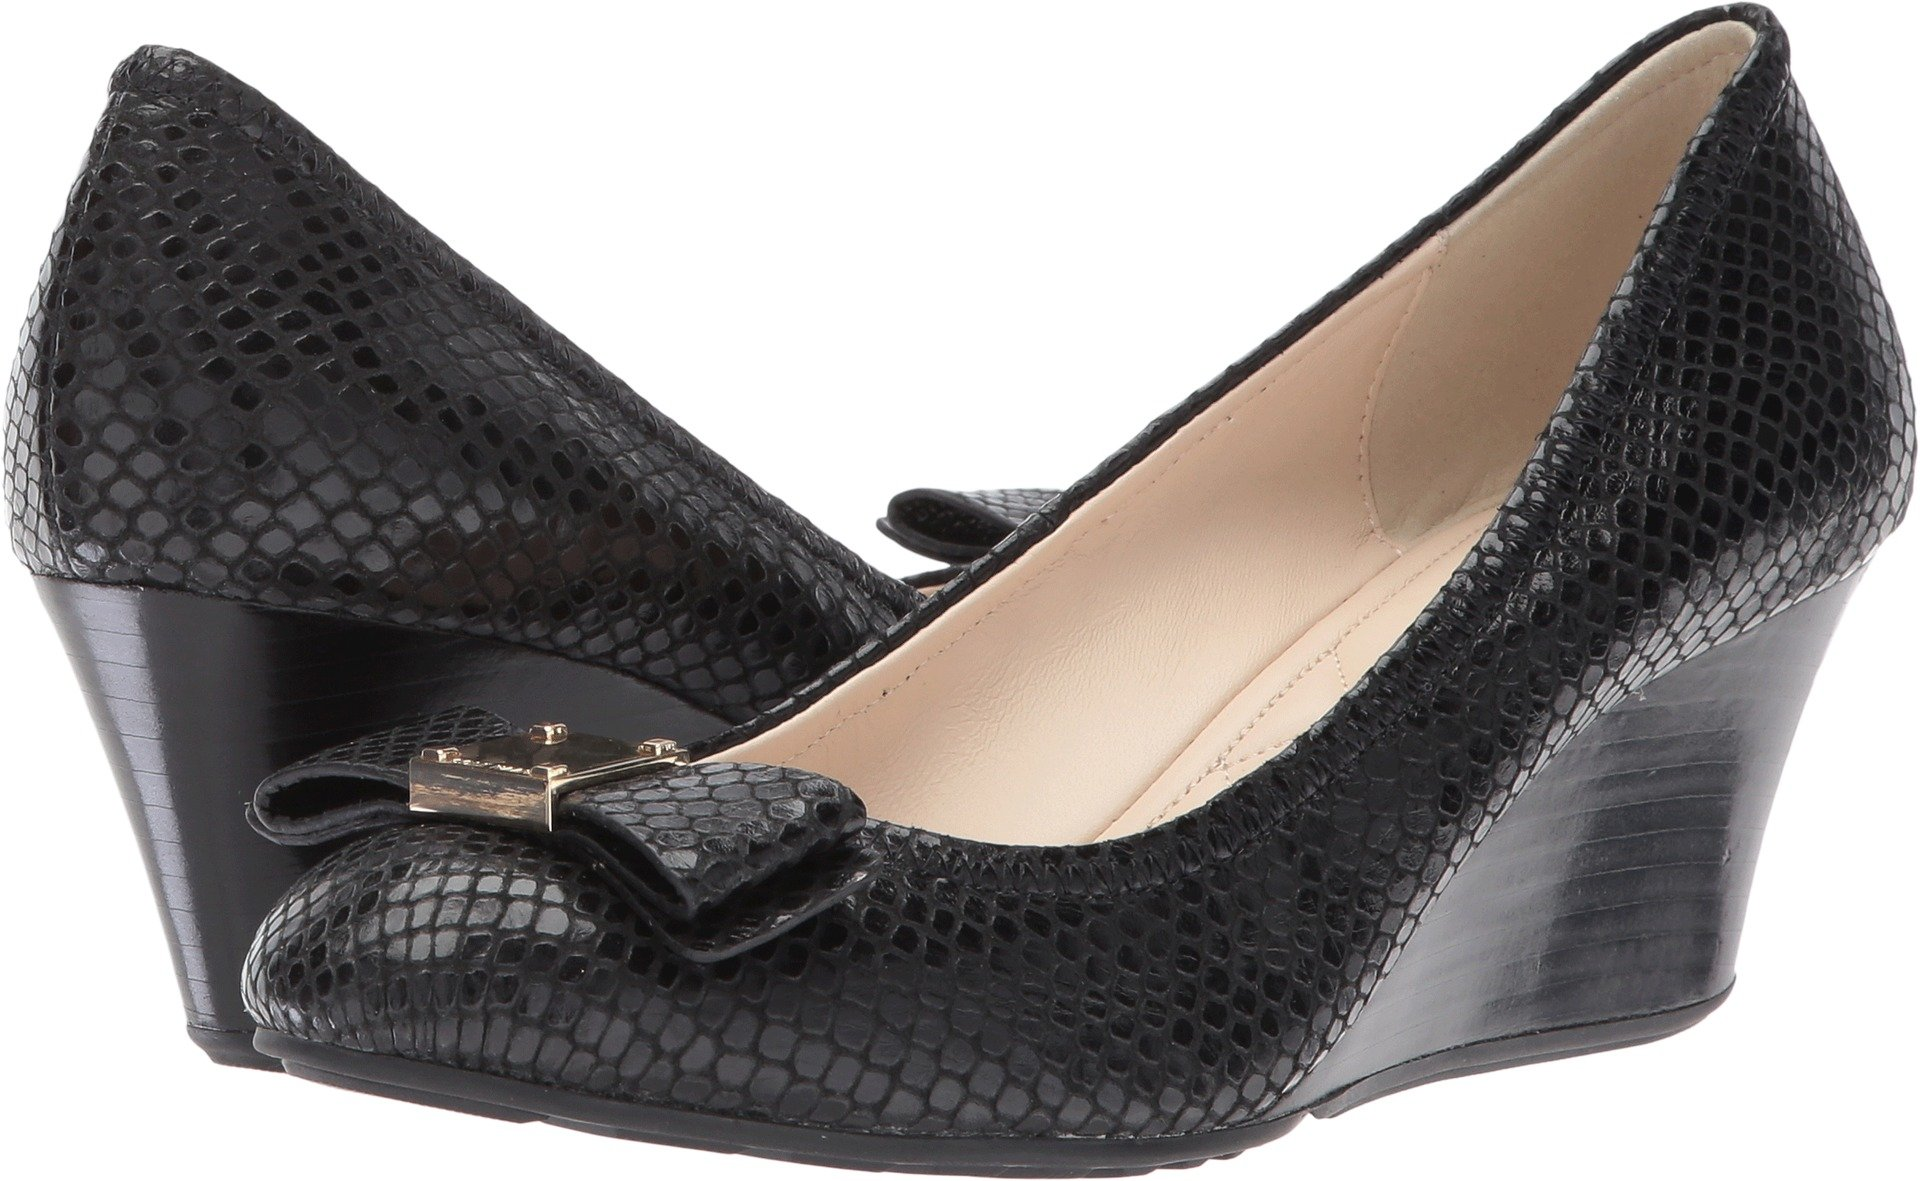 Cole Haan Women's Tali Grand Lace Wedge 40, Black Snake Print, 9.5 B US by Cole Haan